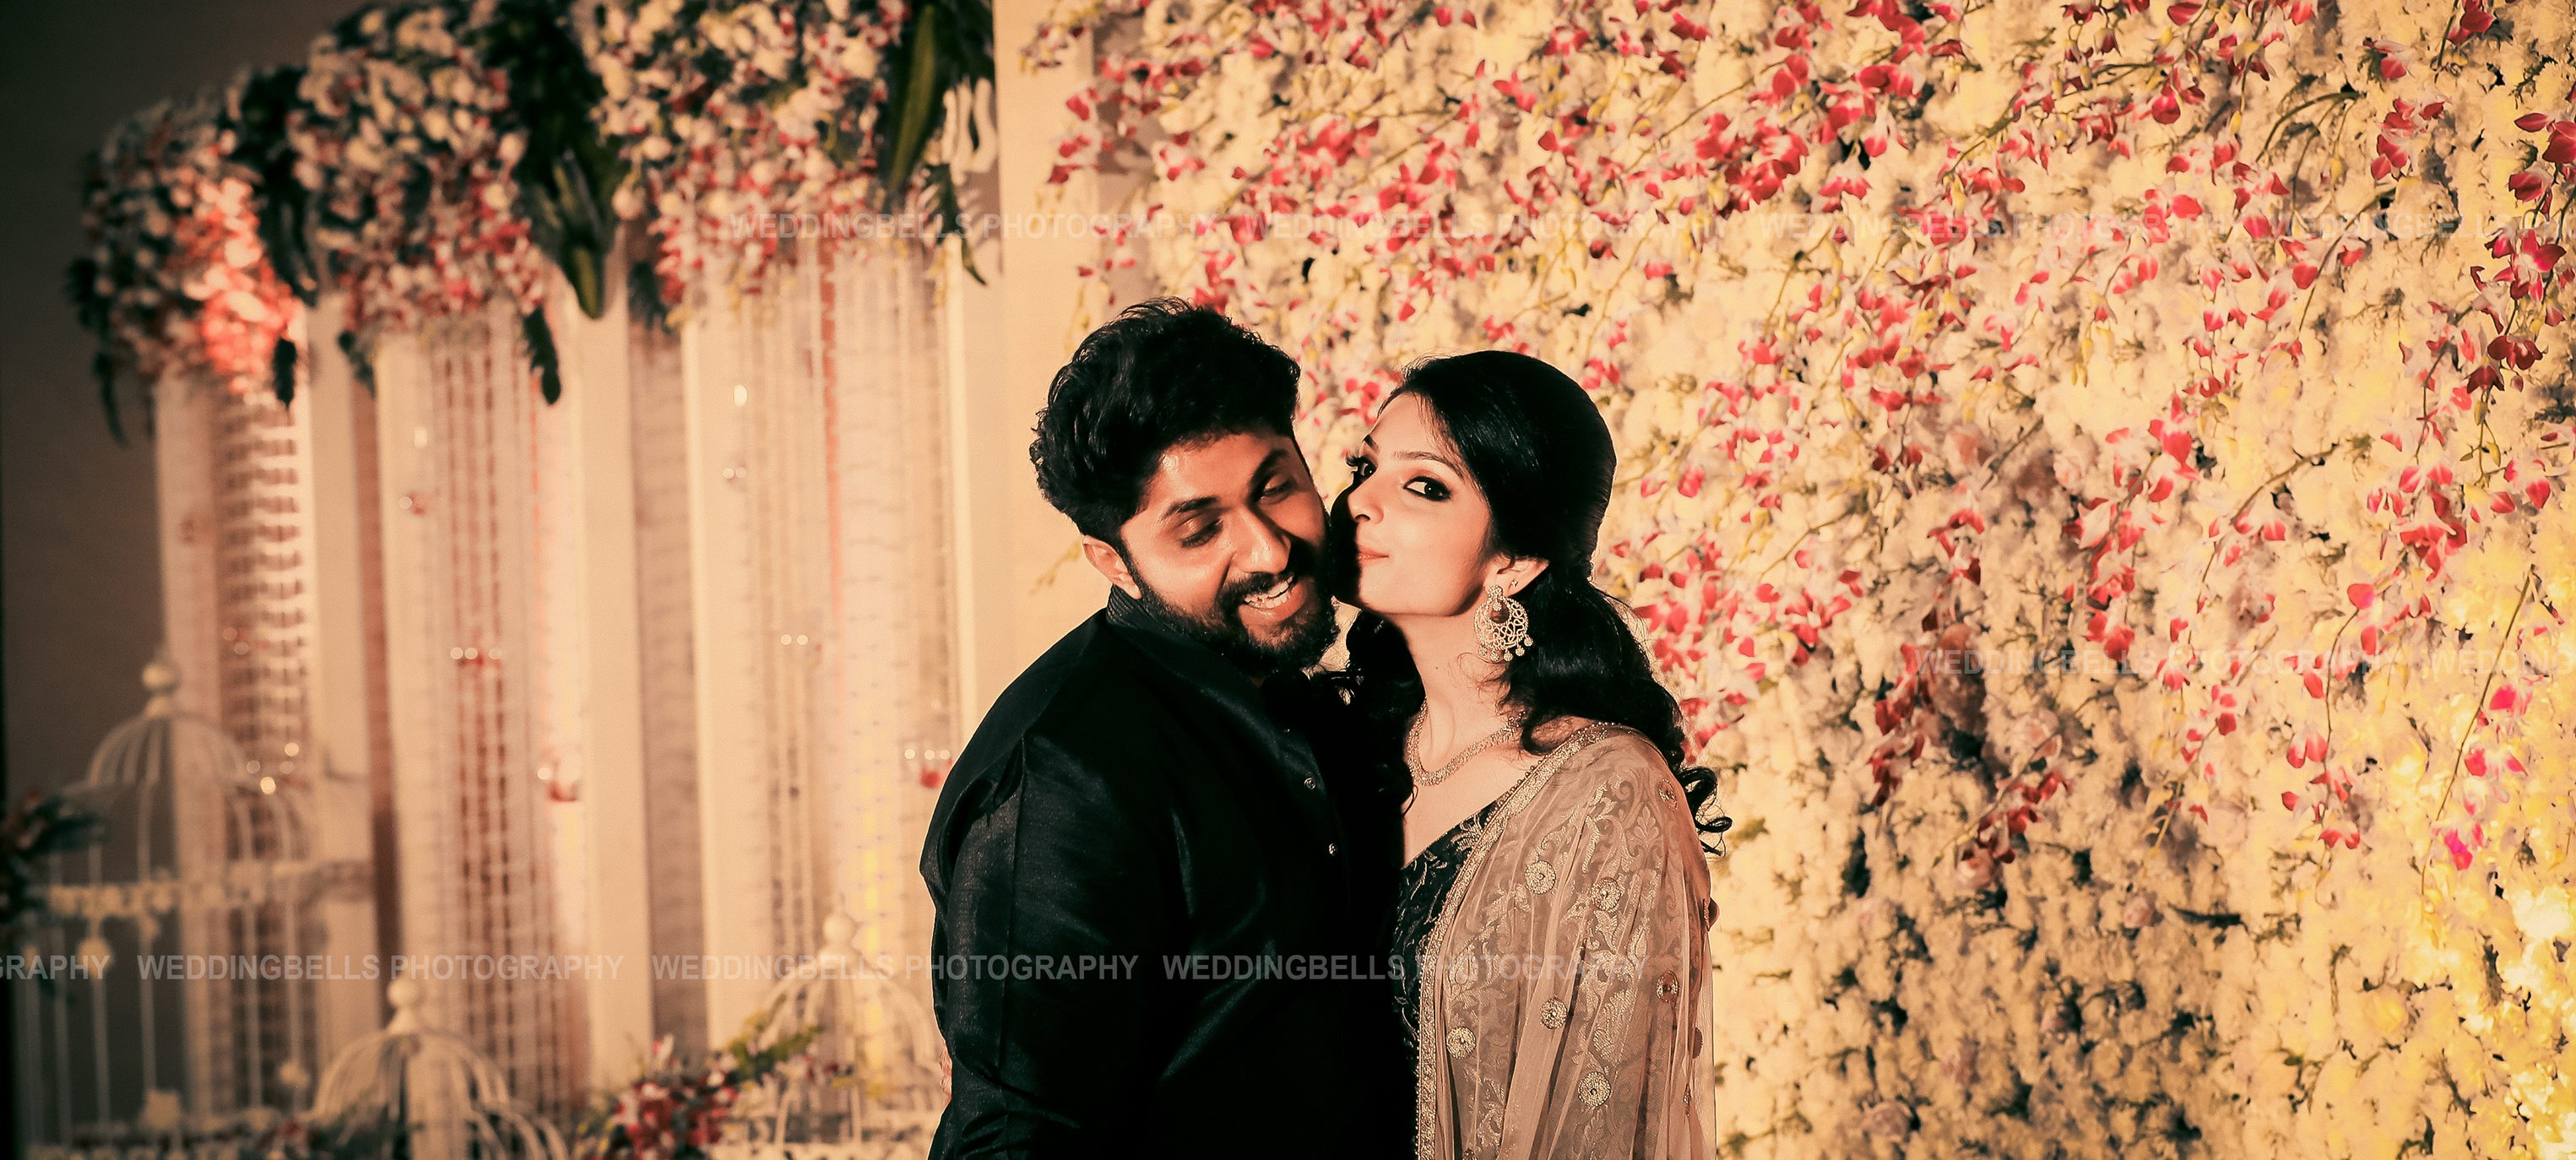 Dhyan sreenivasan & Arpita sebastian Wedding Reception Photos (1)